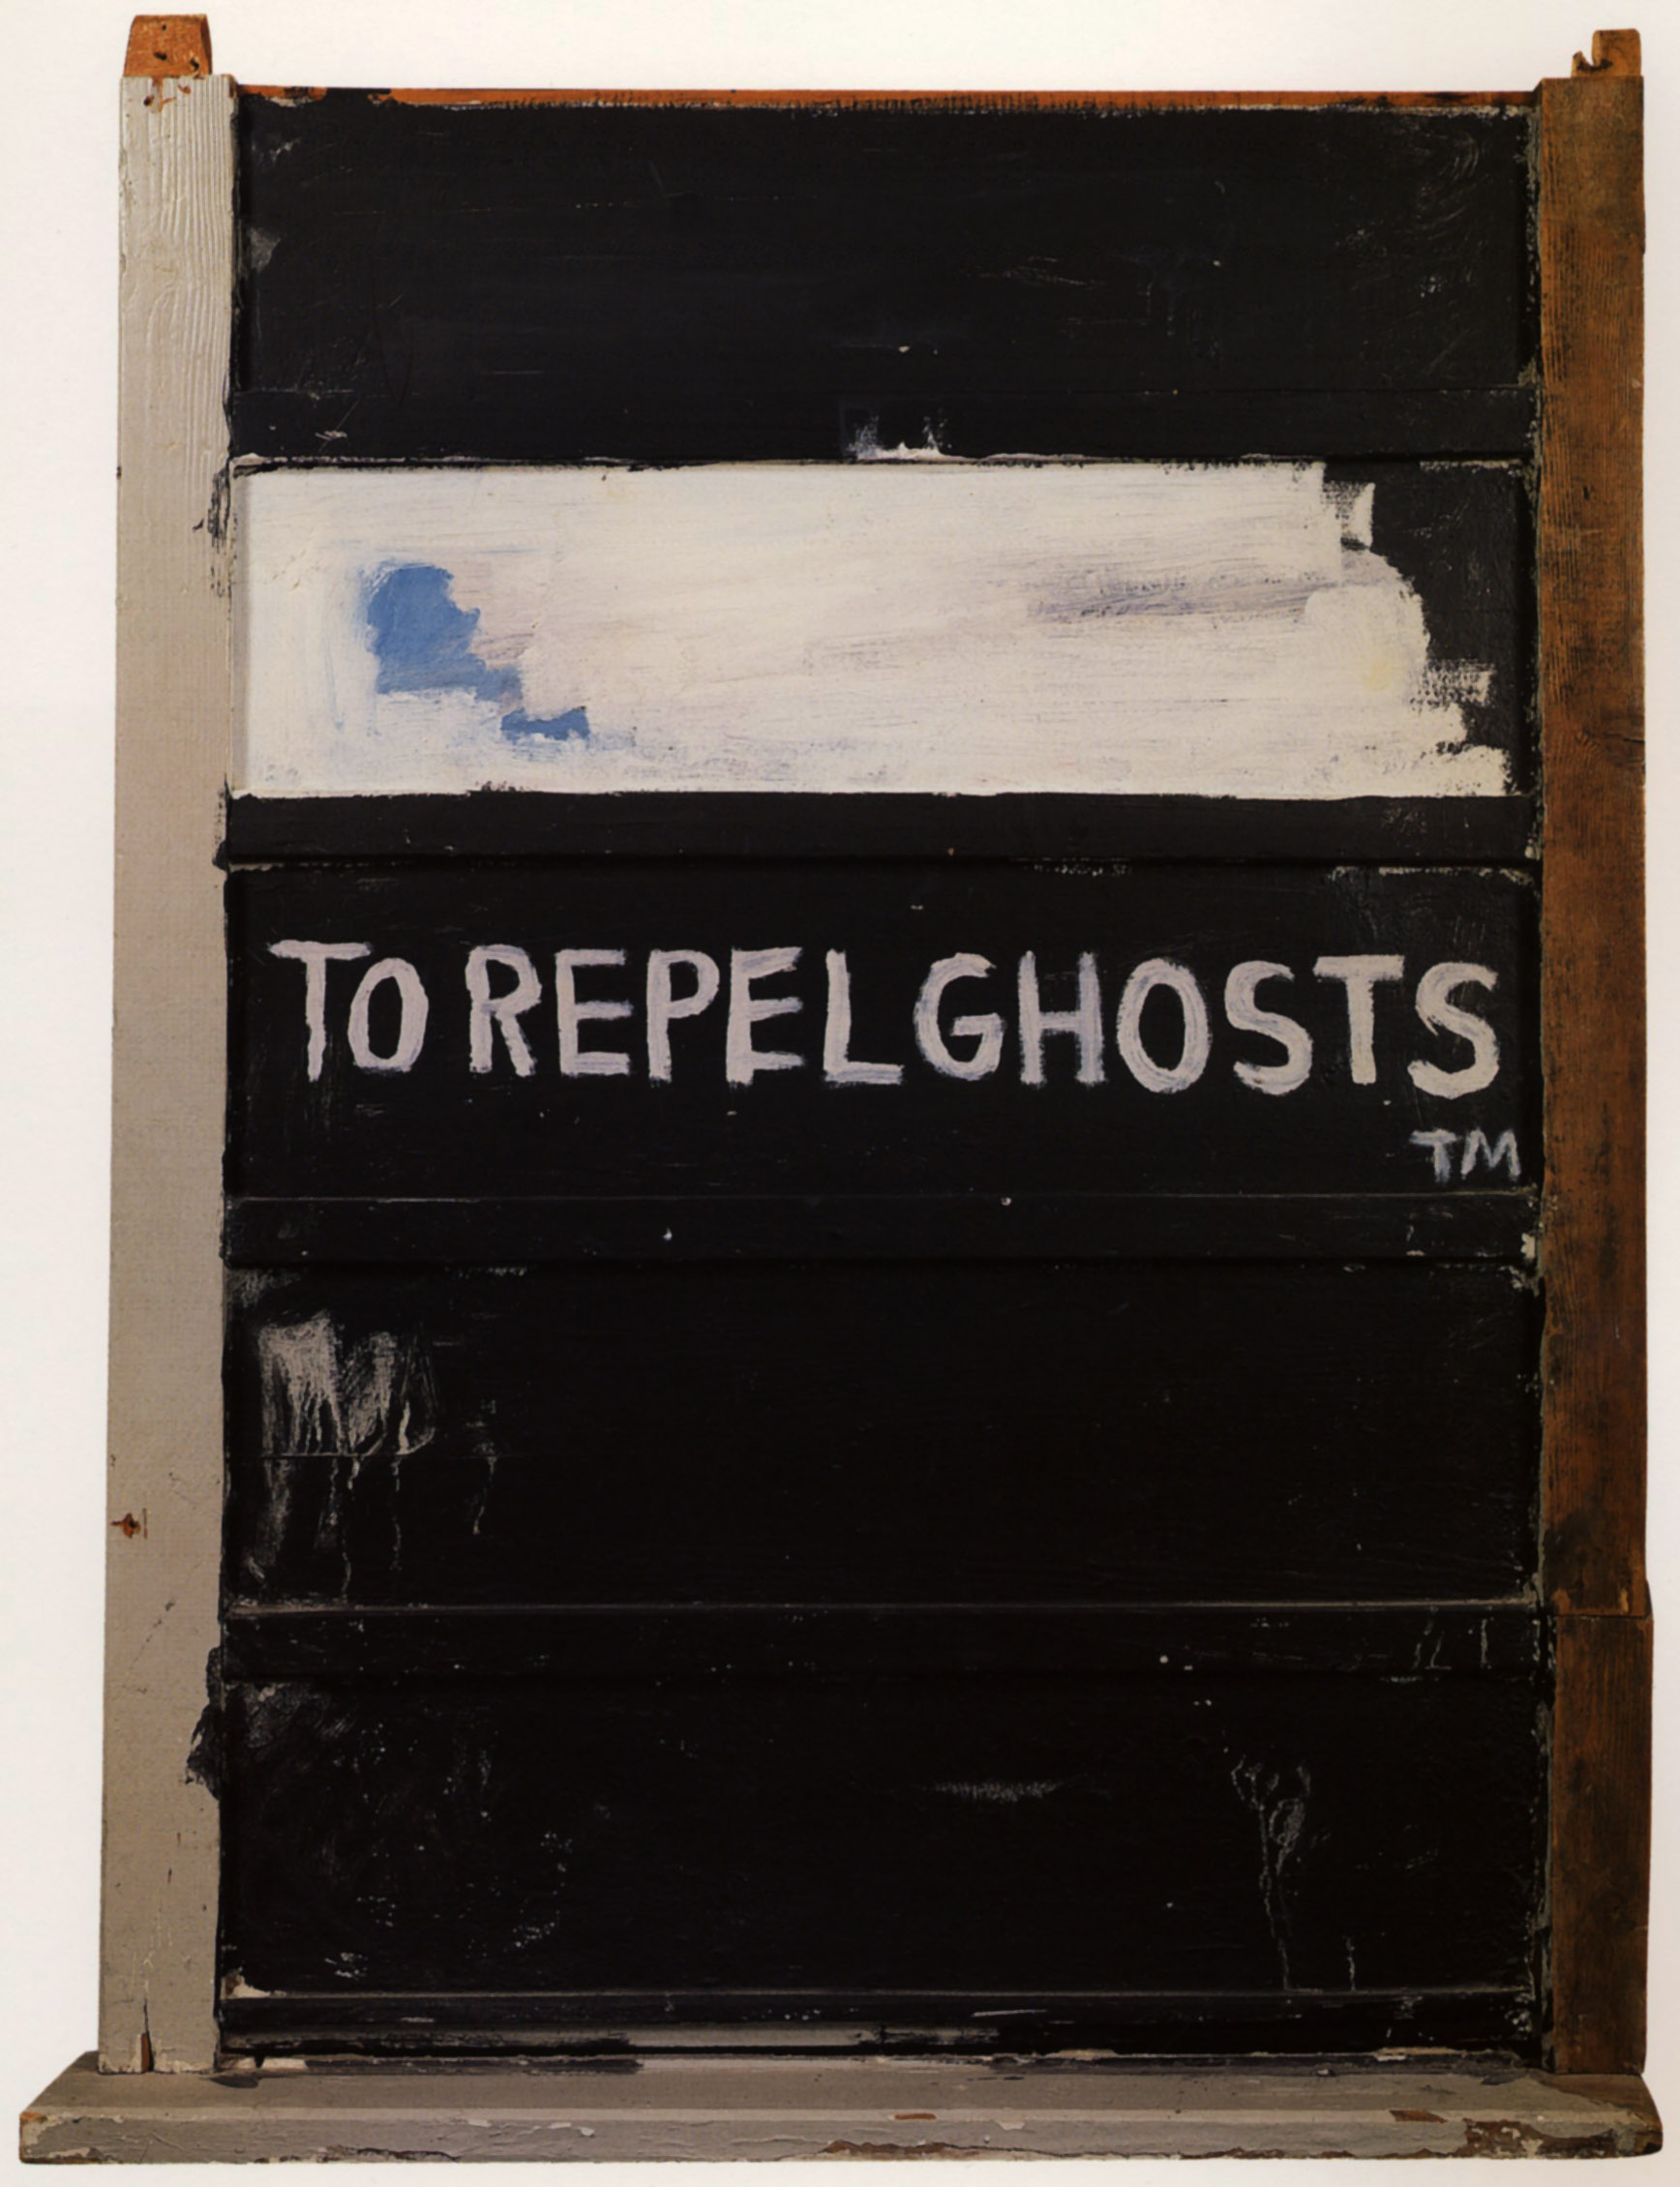 Jean-Michel Basquiat, To Repel Ghosts, 1986